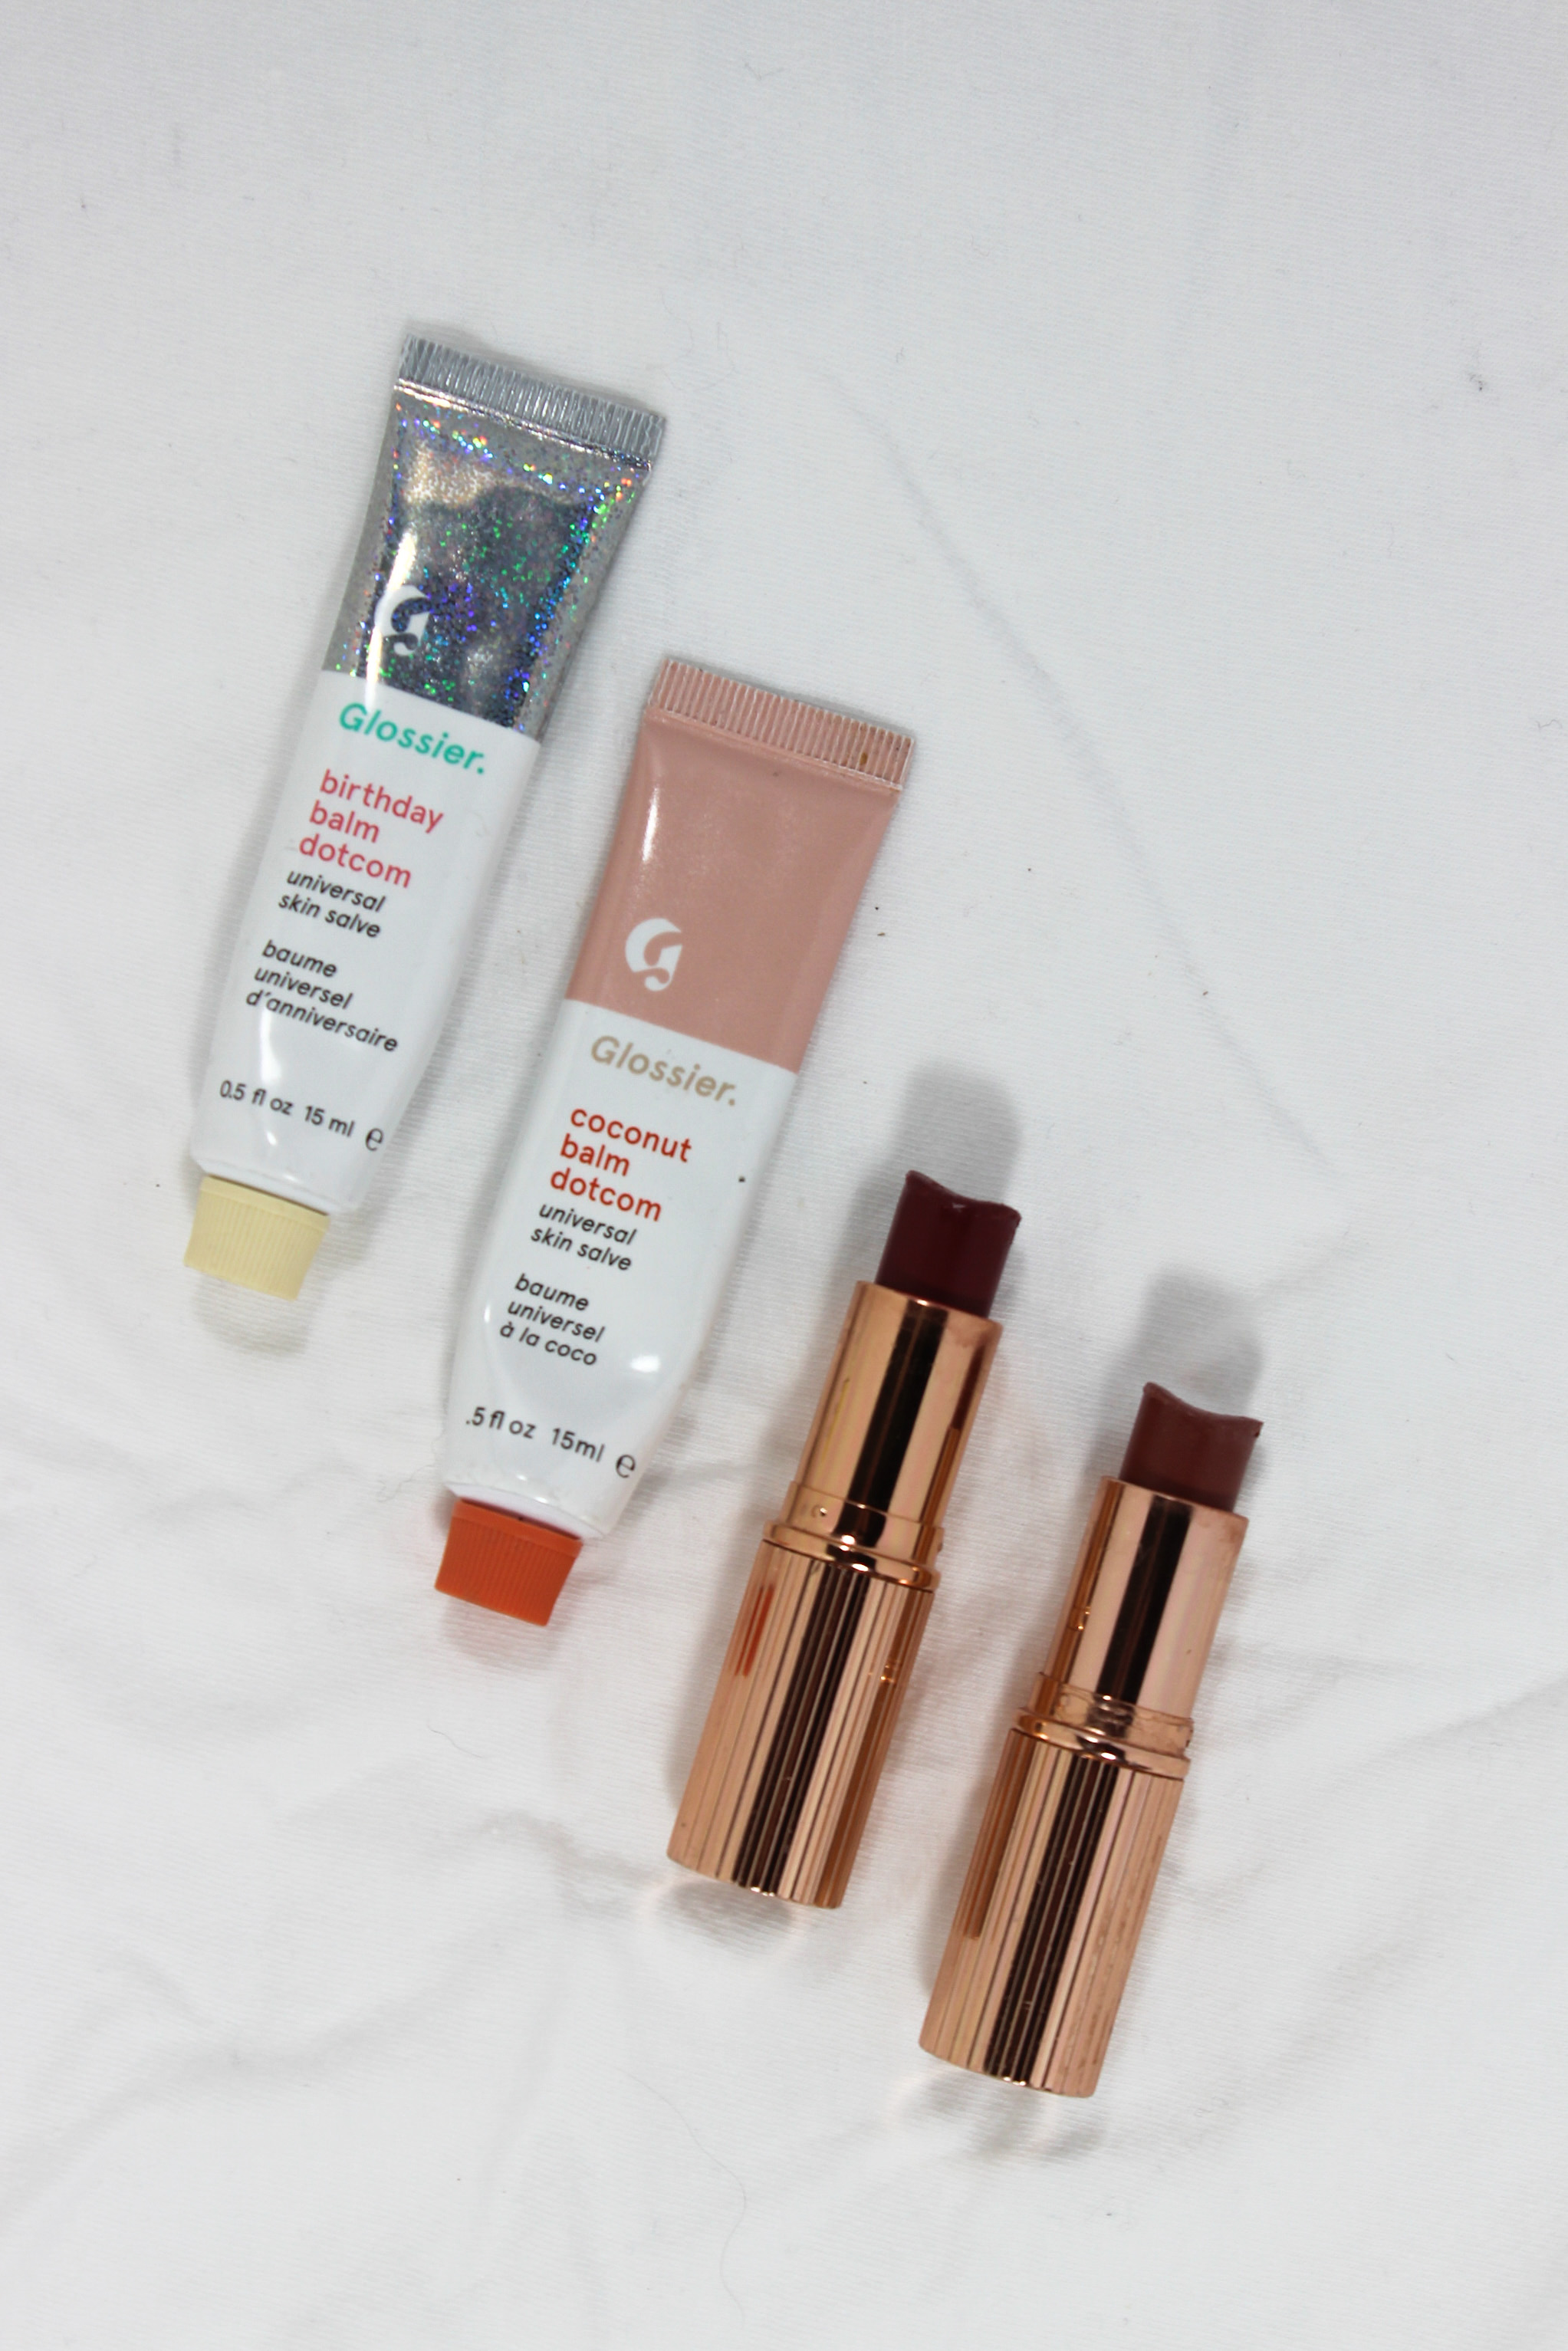 Glossier Balm Dotcom in coconut and birthday cake, Charlotte Tilbury lipstick in Bond Girl and Very Victoria